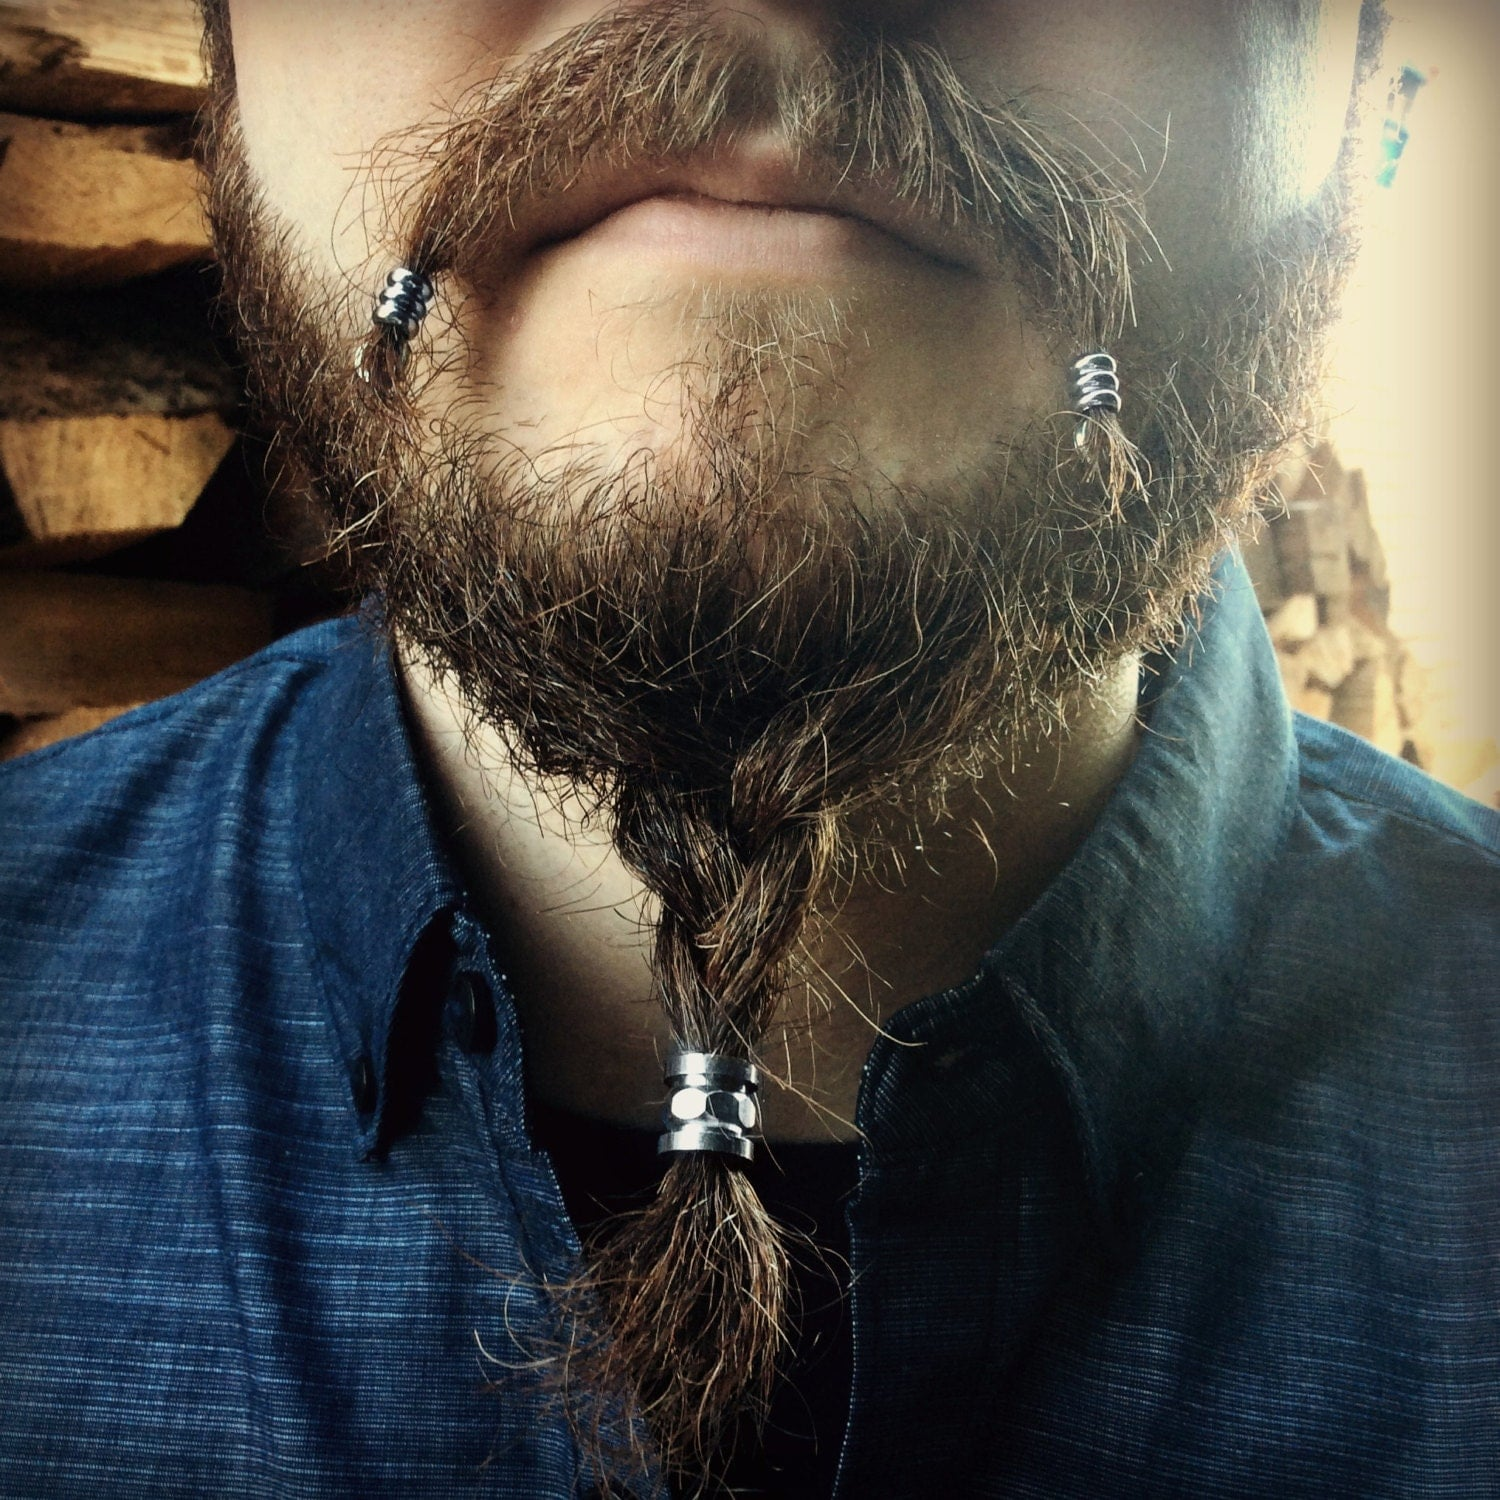 Beard Bead Kit 'Bolton' STAINLESS STEEL industrial beard